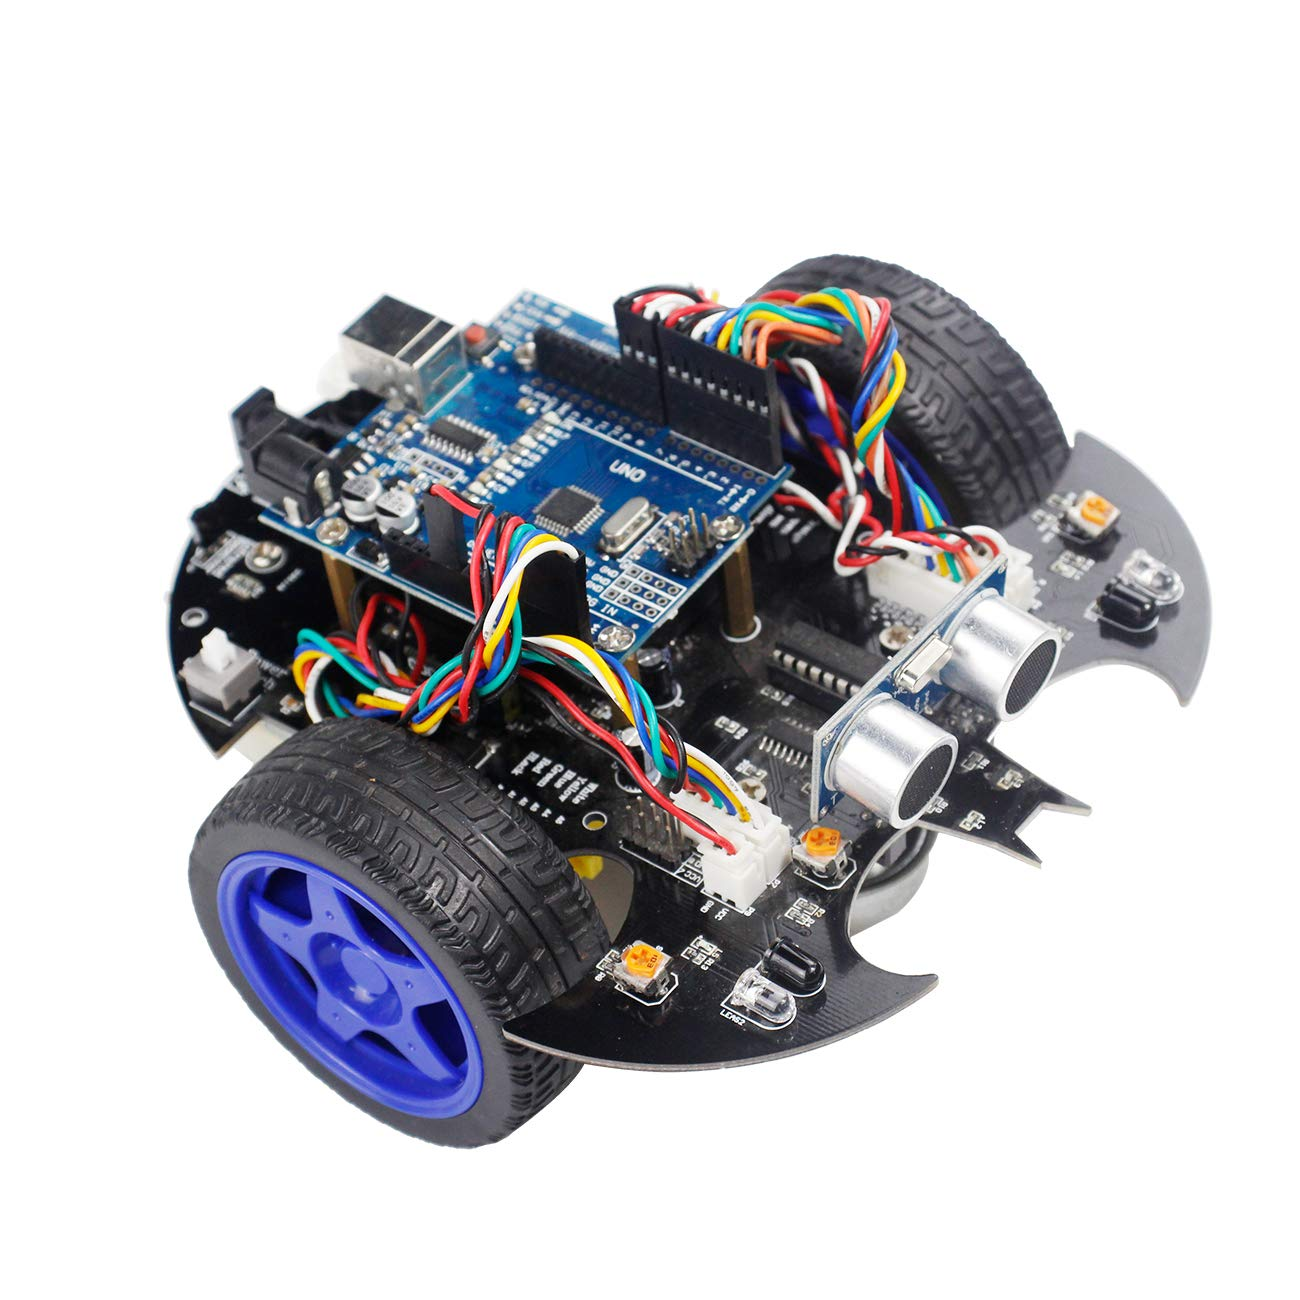 Yahboom-maker Robotics Starter Learning Building Kits Robot Car Kit for Arduino UNO R3 Scratch 3.0 Bat Smart Robots Toy for Programmable STEM Educational Toys with Tutorial for Kids 8+ and Adults by Yahboom-maker (Image #7)